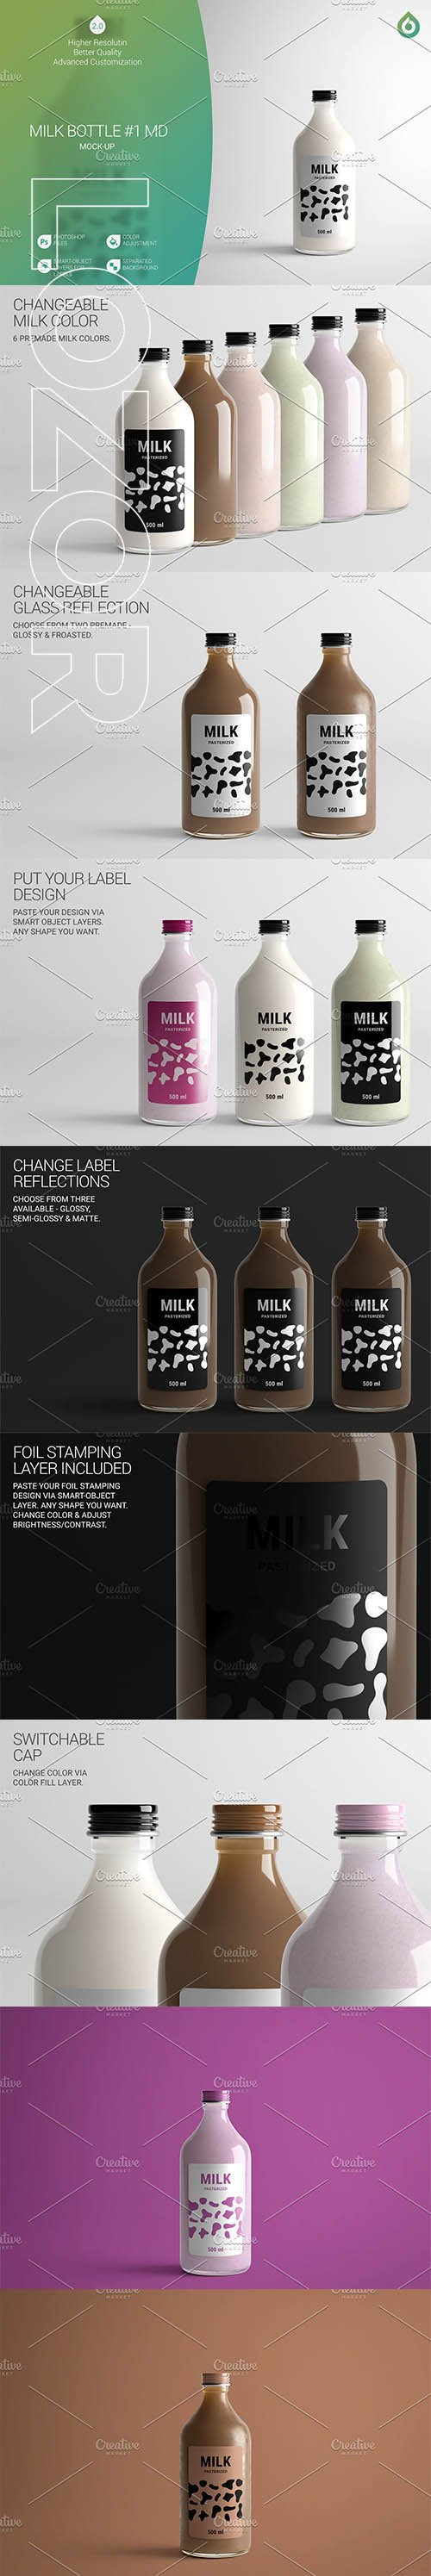 CreativeMarket - Milk Bottle MD Mock-Up #1 [V2.0] 4187988